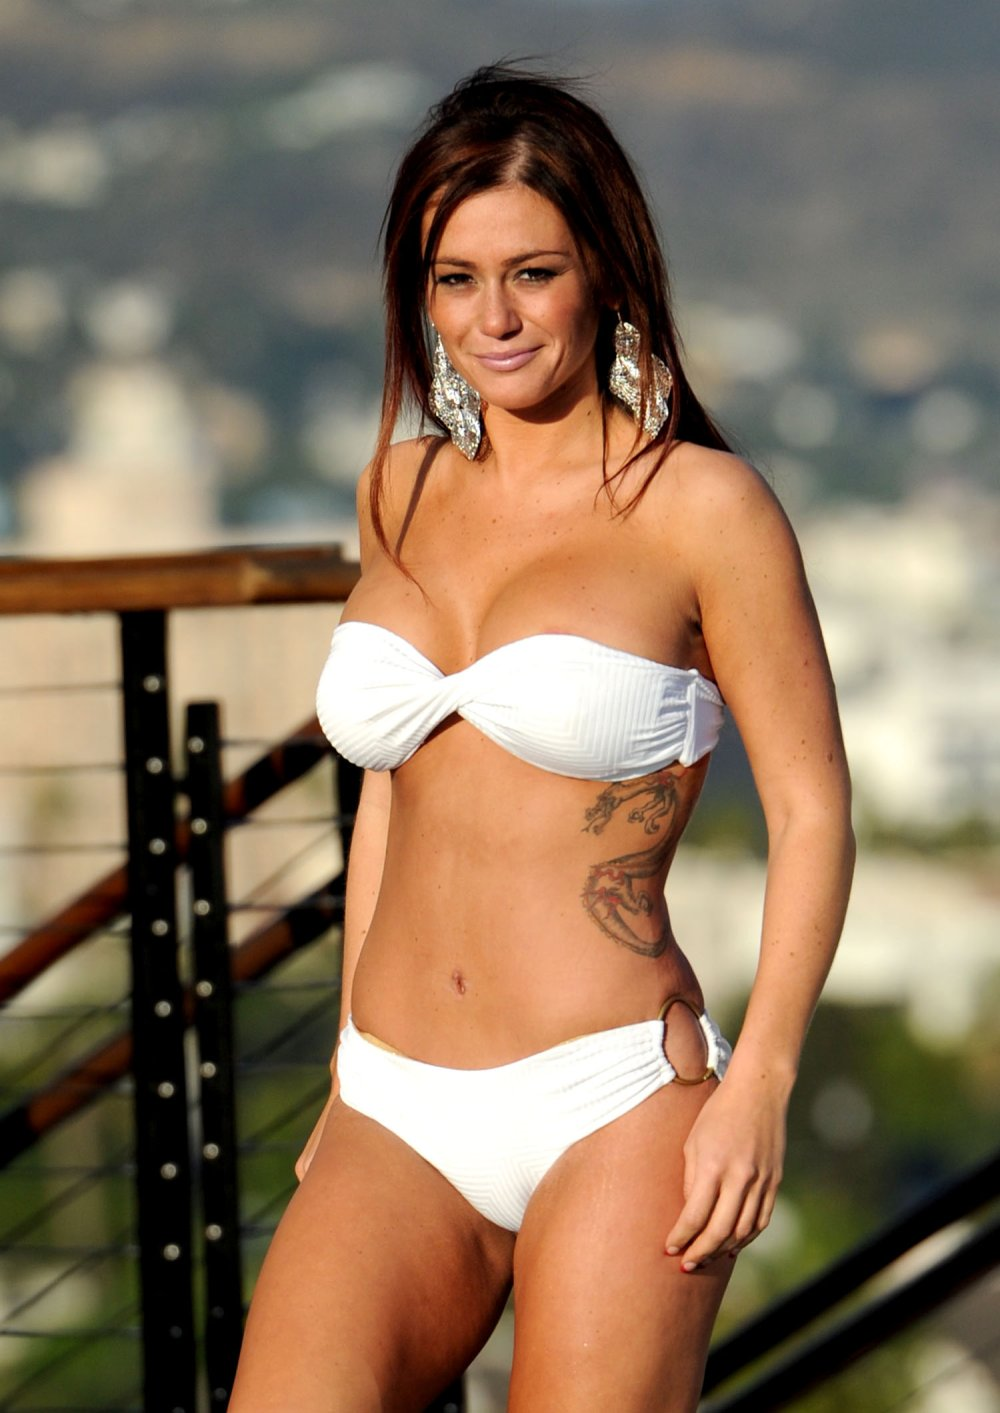 Bikini Cleavage Jenni Farley JWoww naked photo 2017